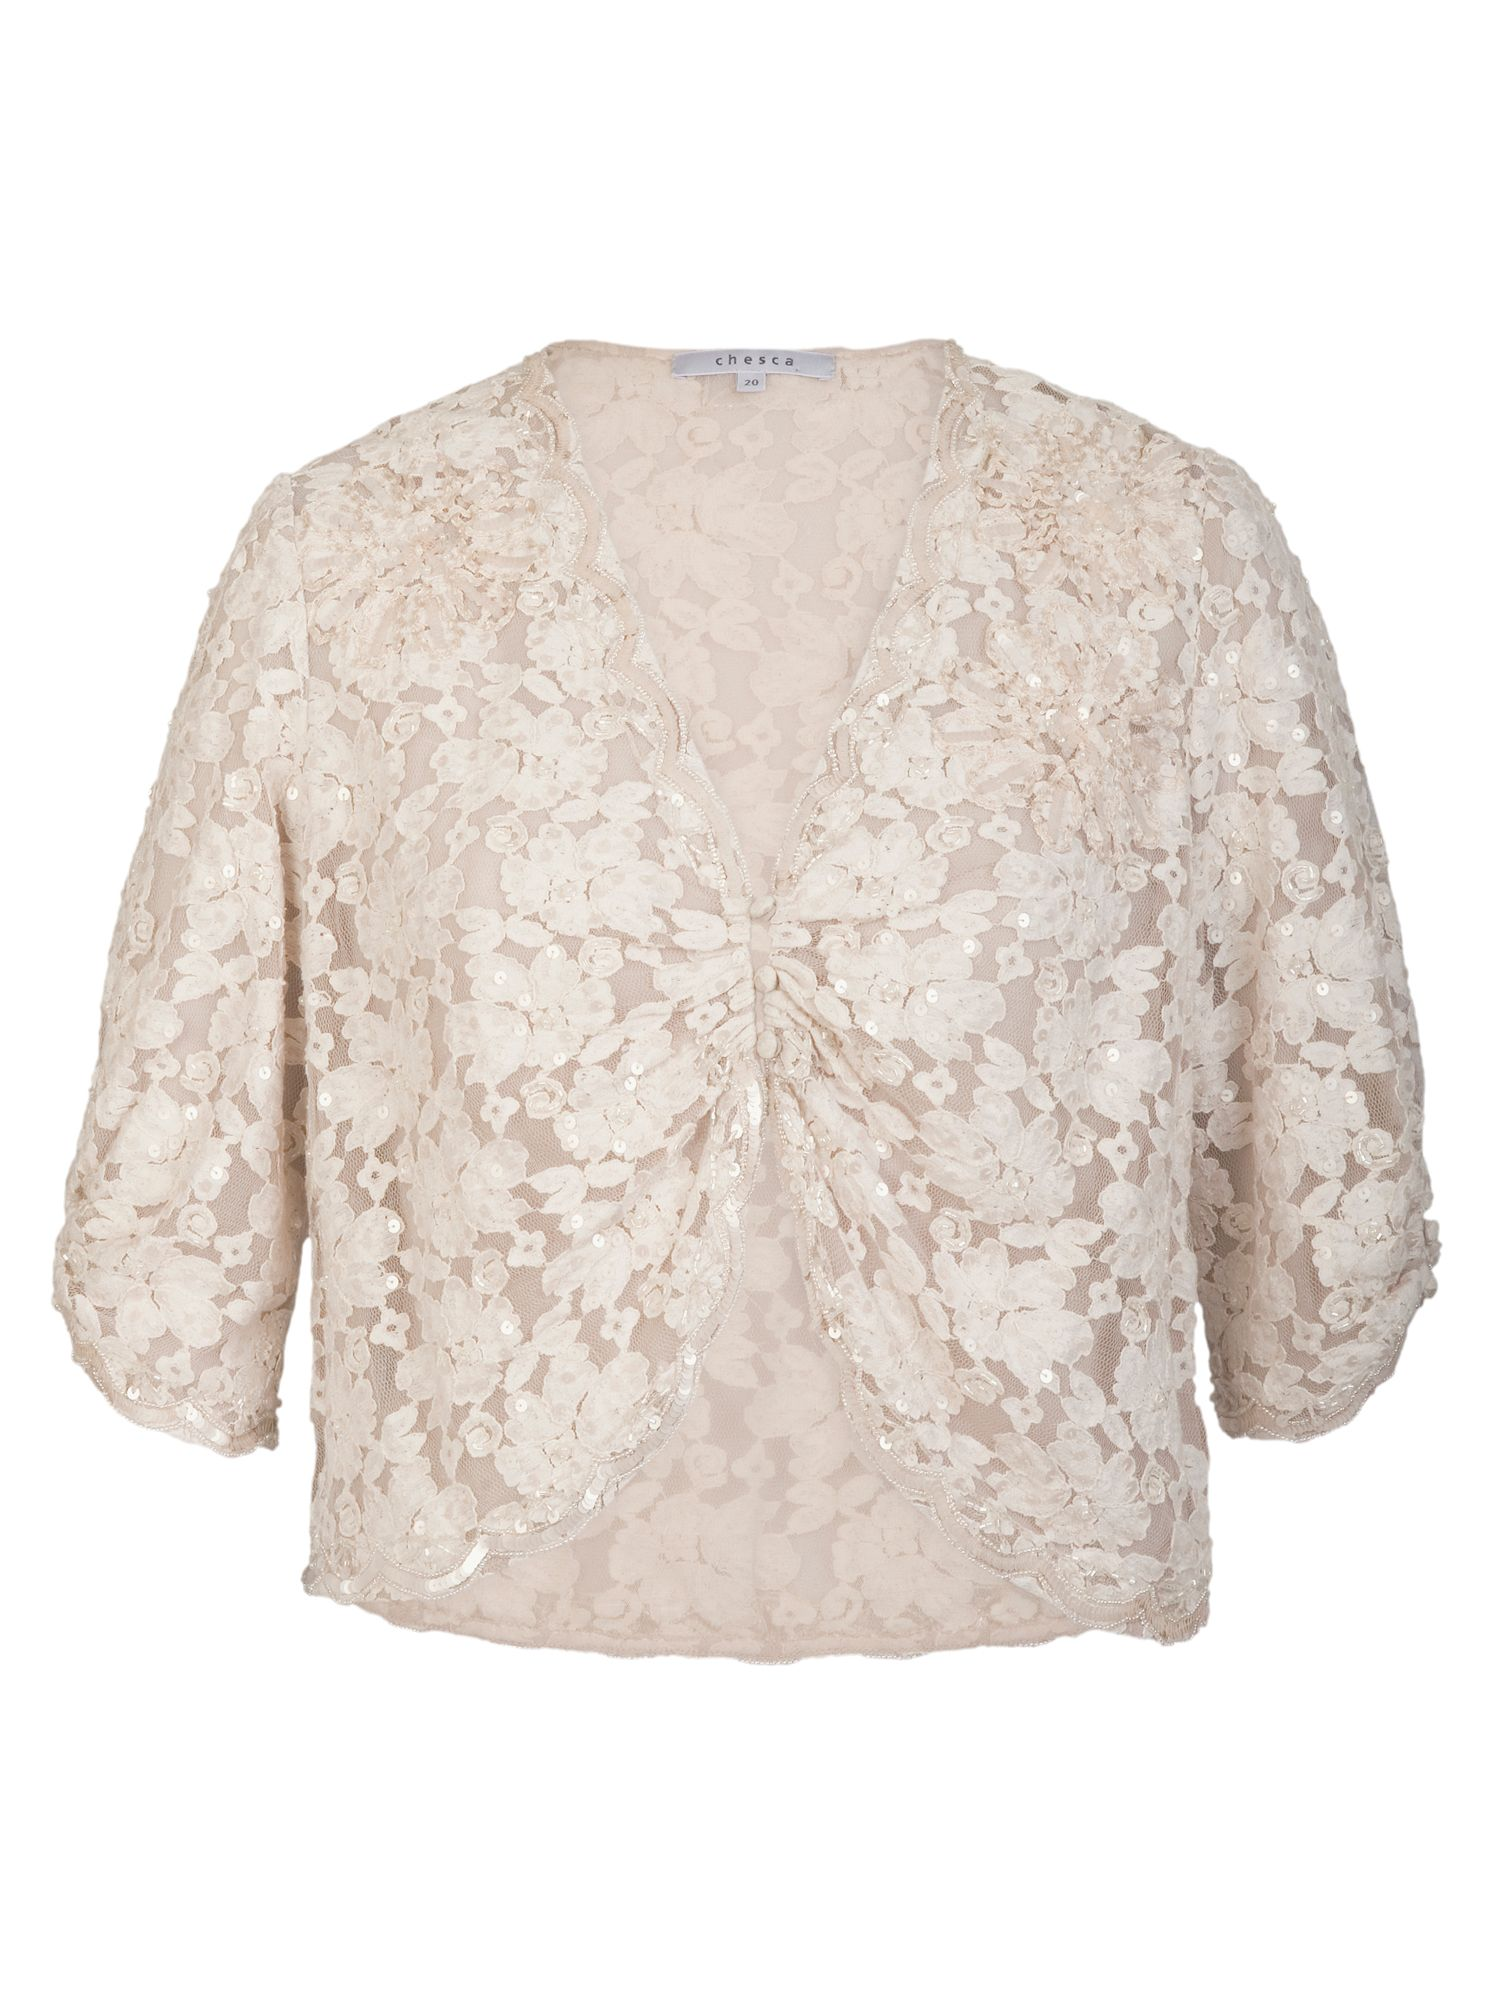 Chesca Ivory Beaded Lace Bolero, Cream